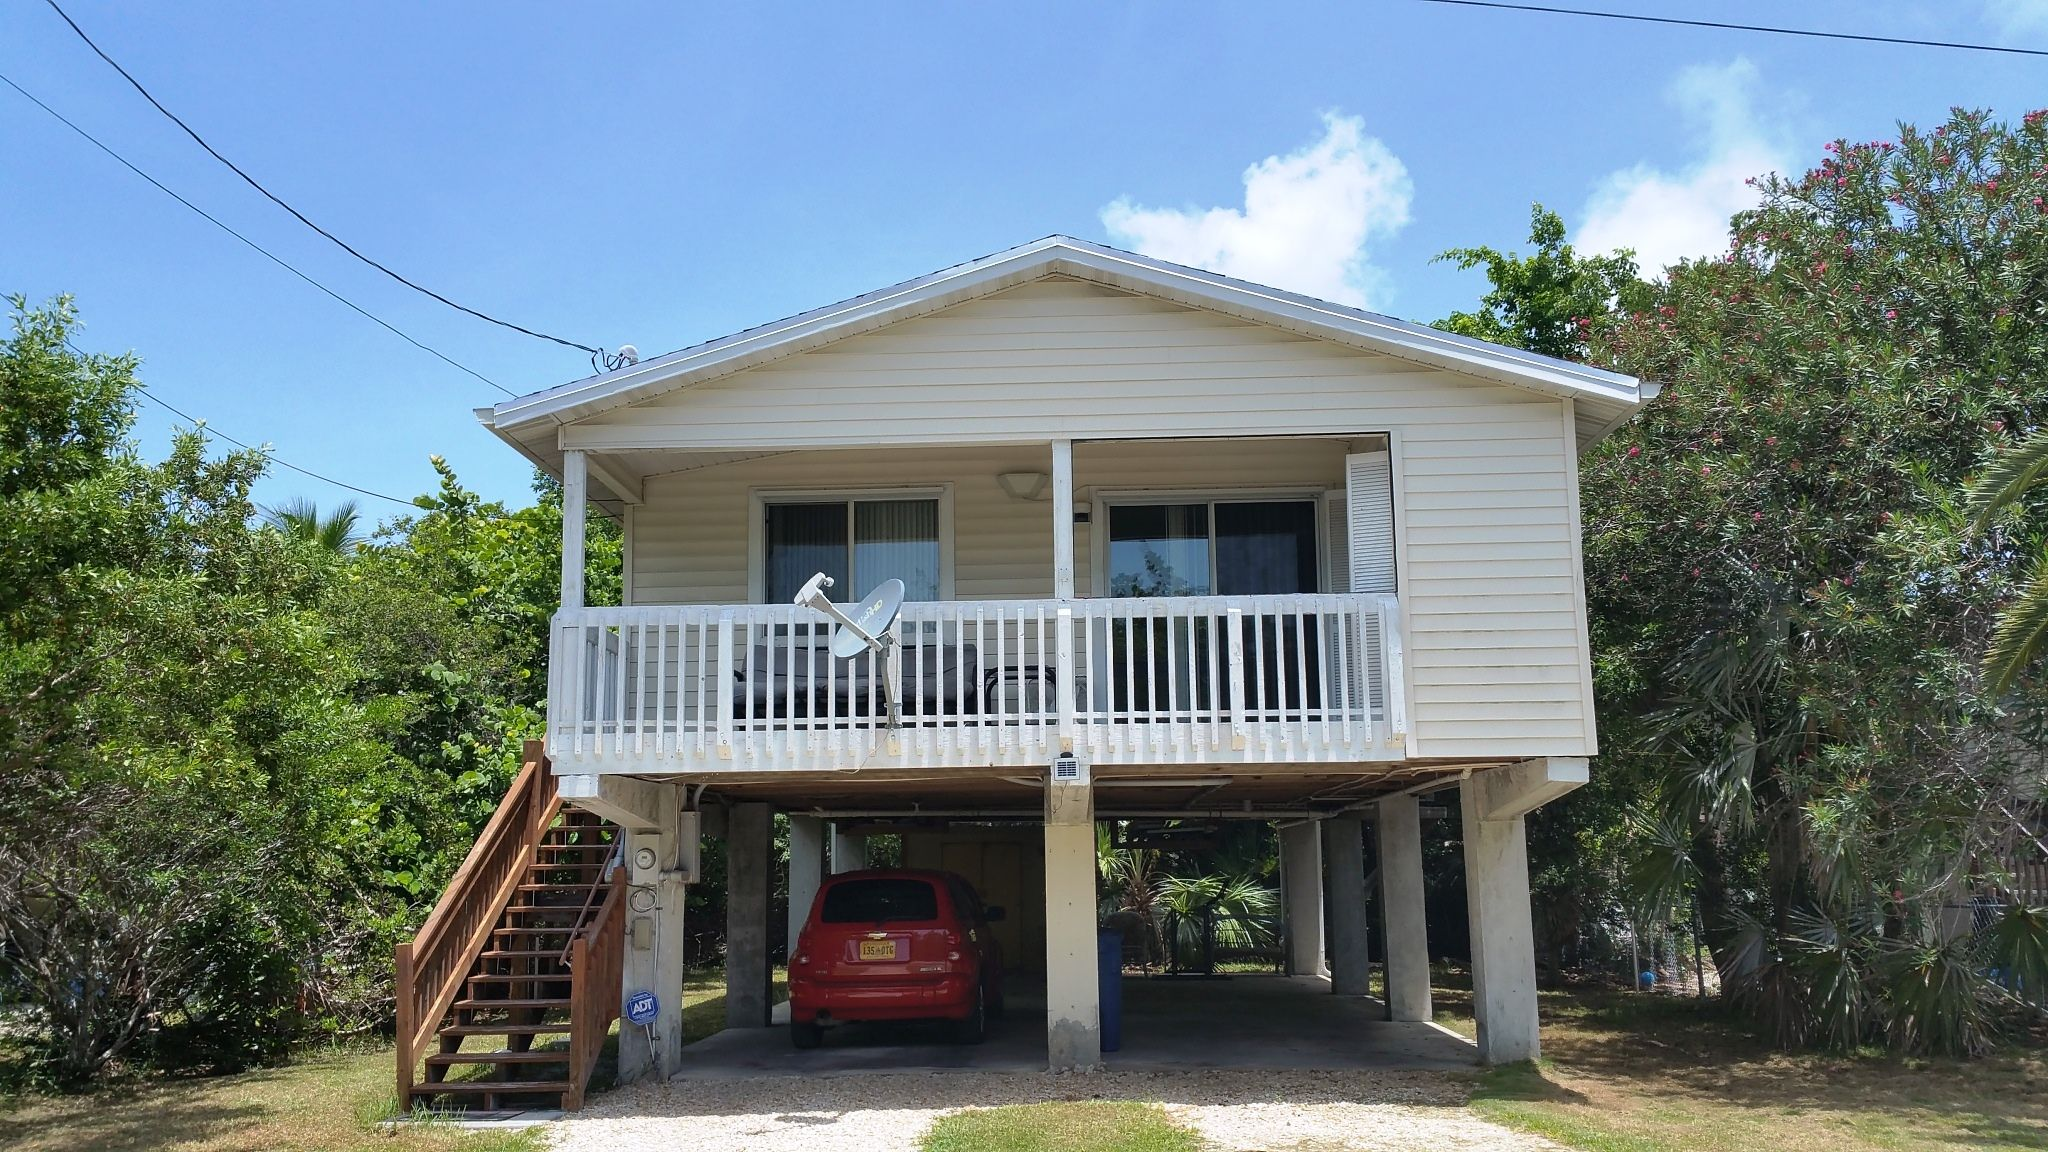 SOLD!!: 31147 Ave H in Big Pine Key, Florida. 3bd/2ba for $279,000.